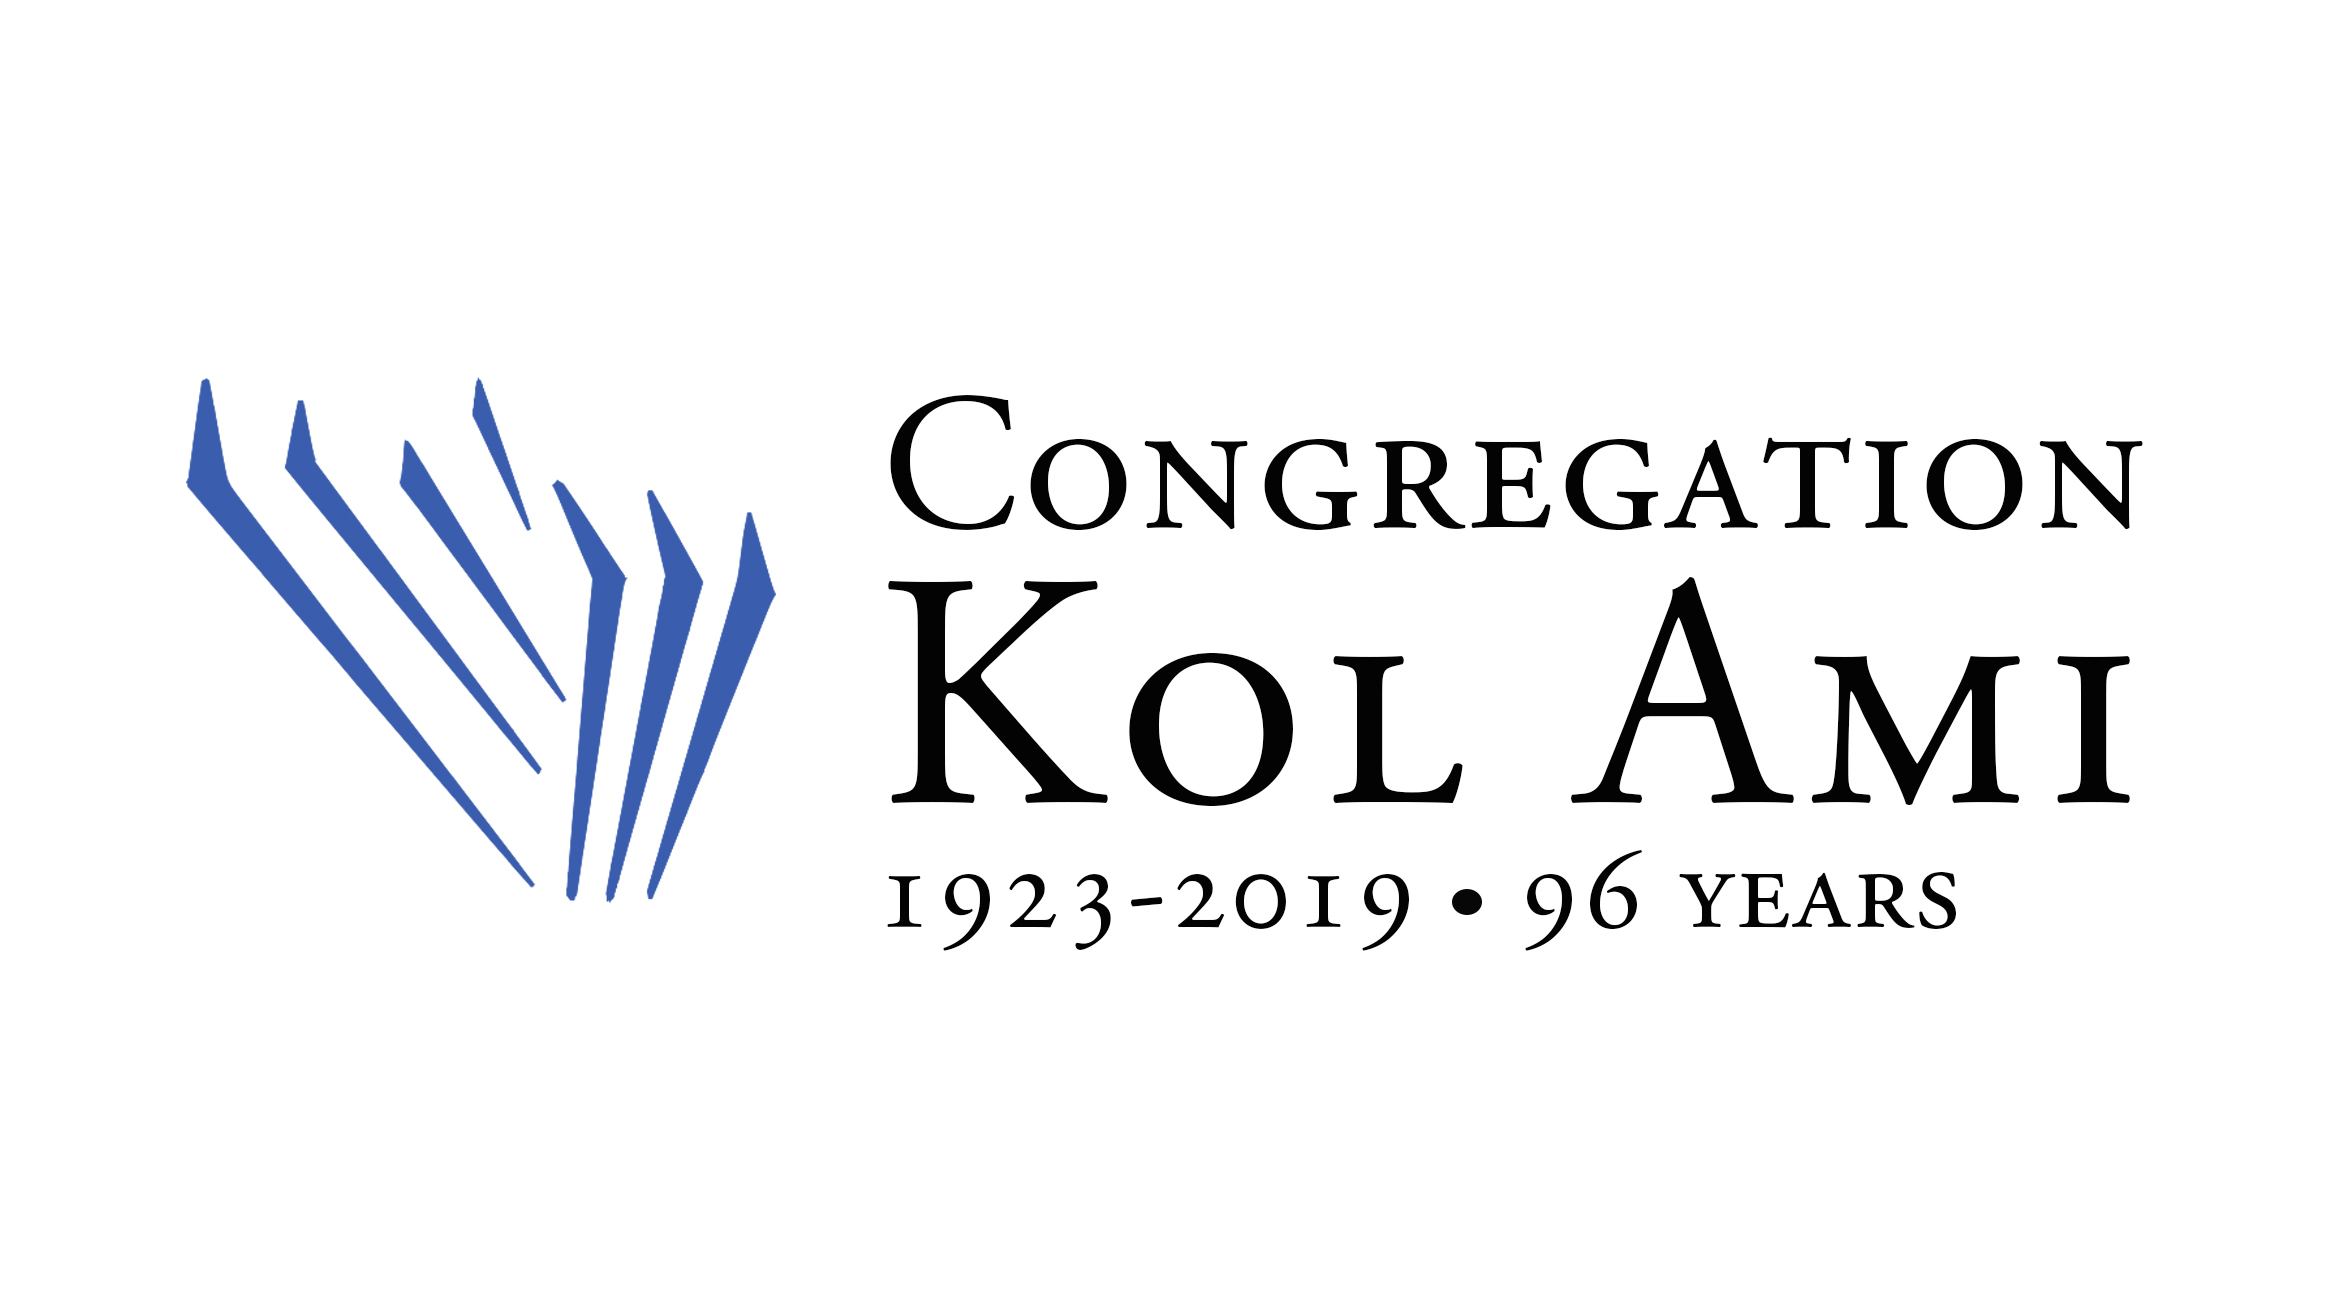 Congregation Kol Ami - Westchester's Oldest Reform Temple